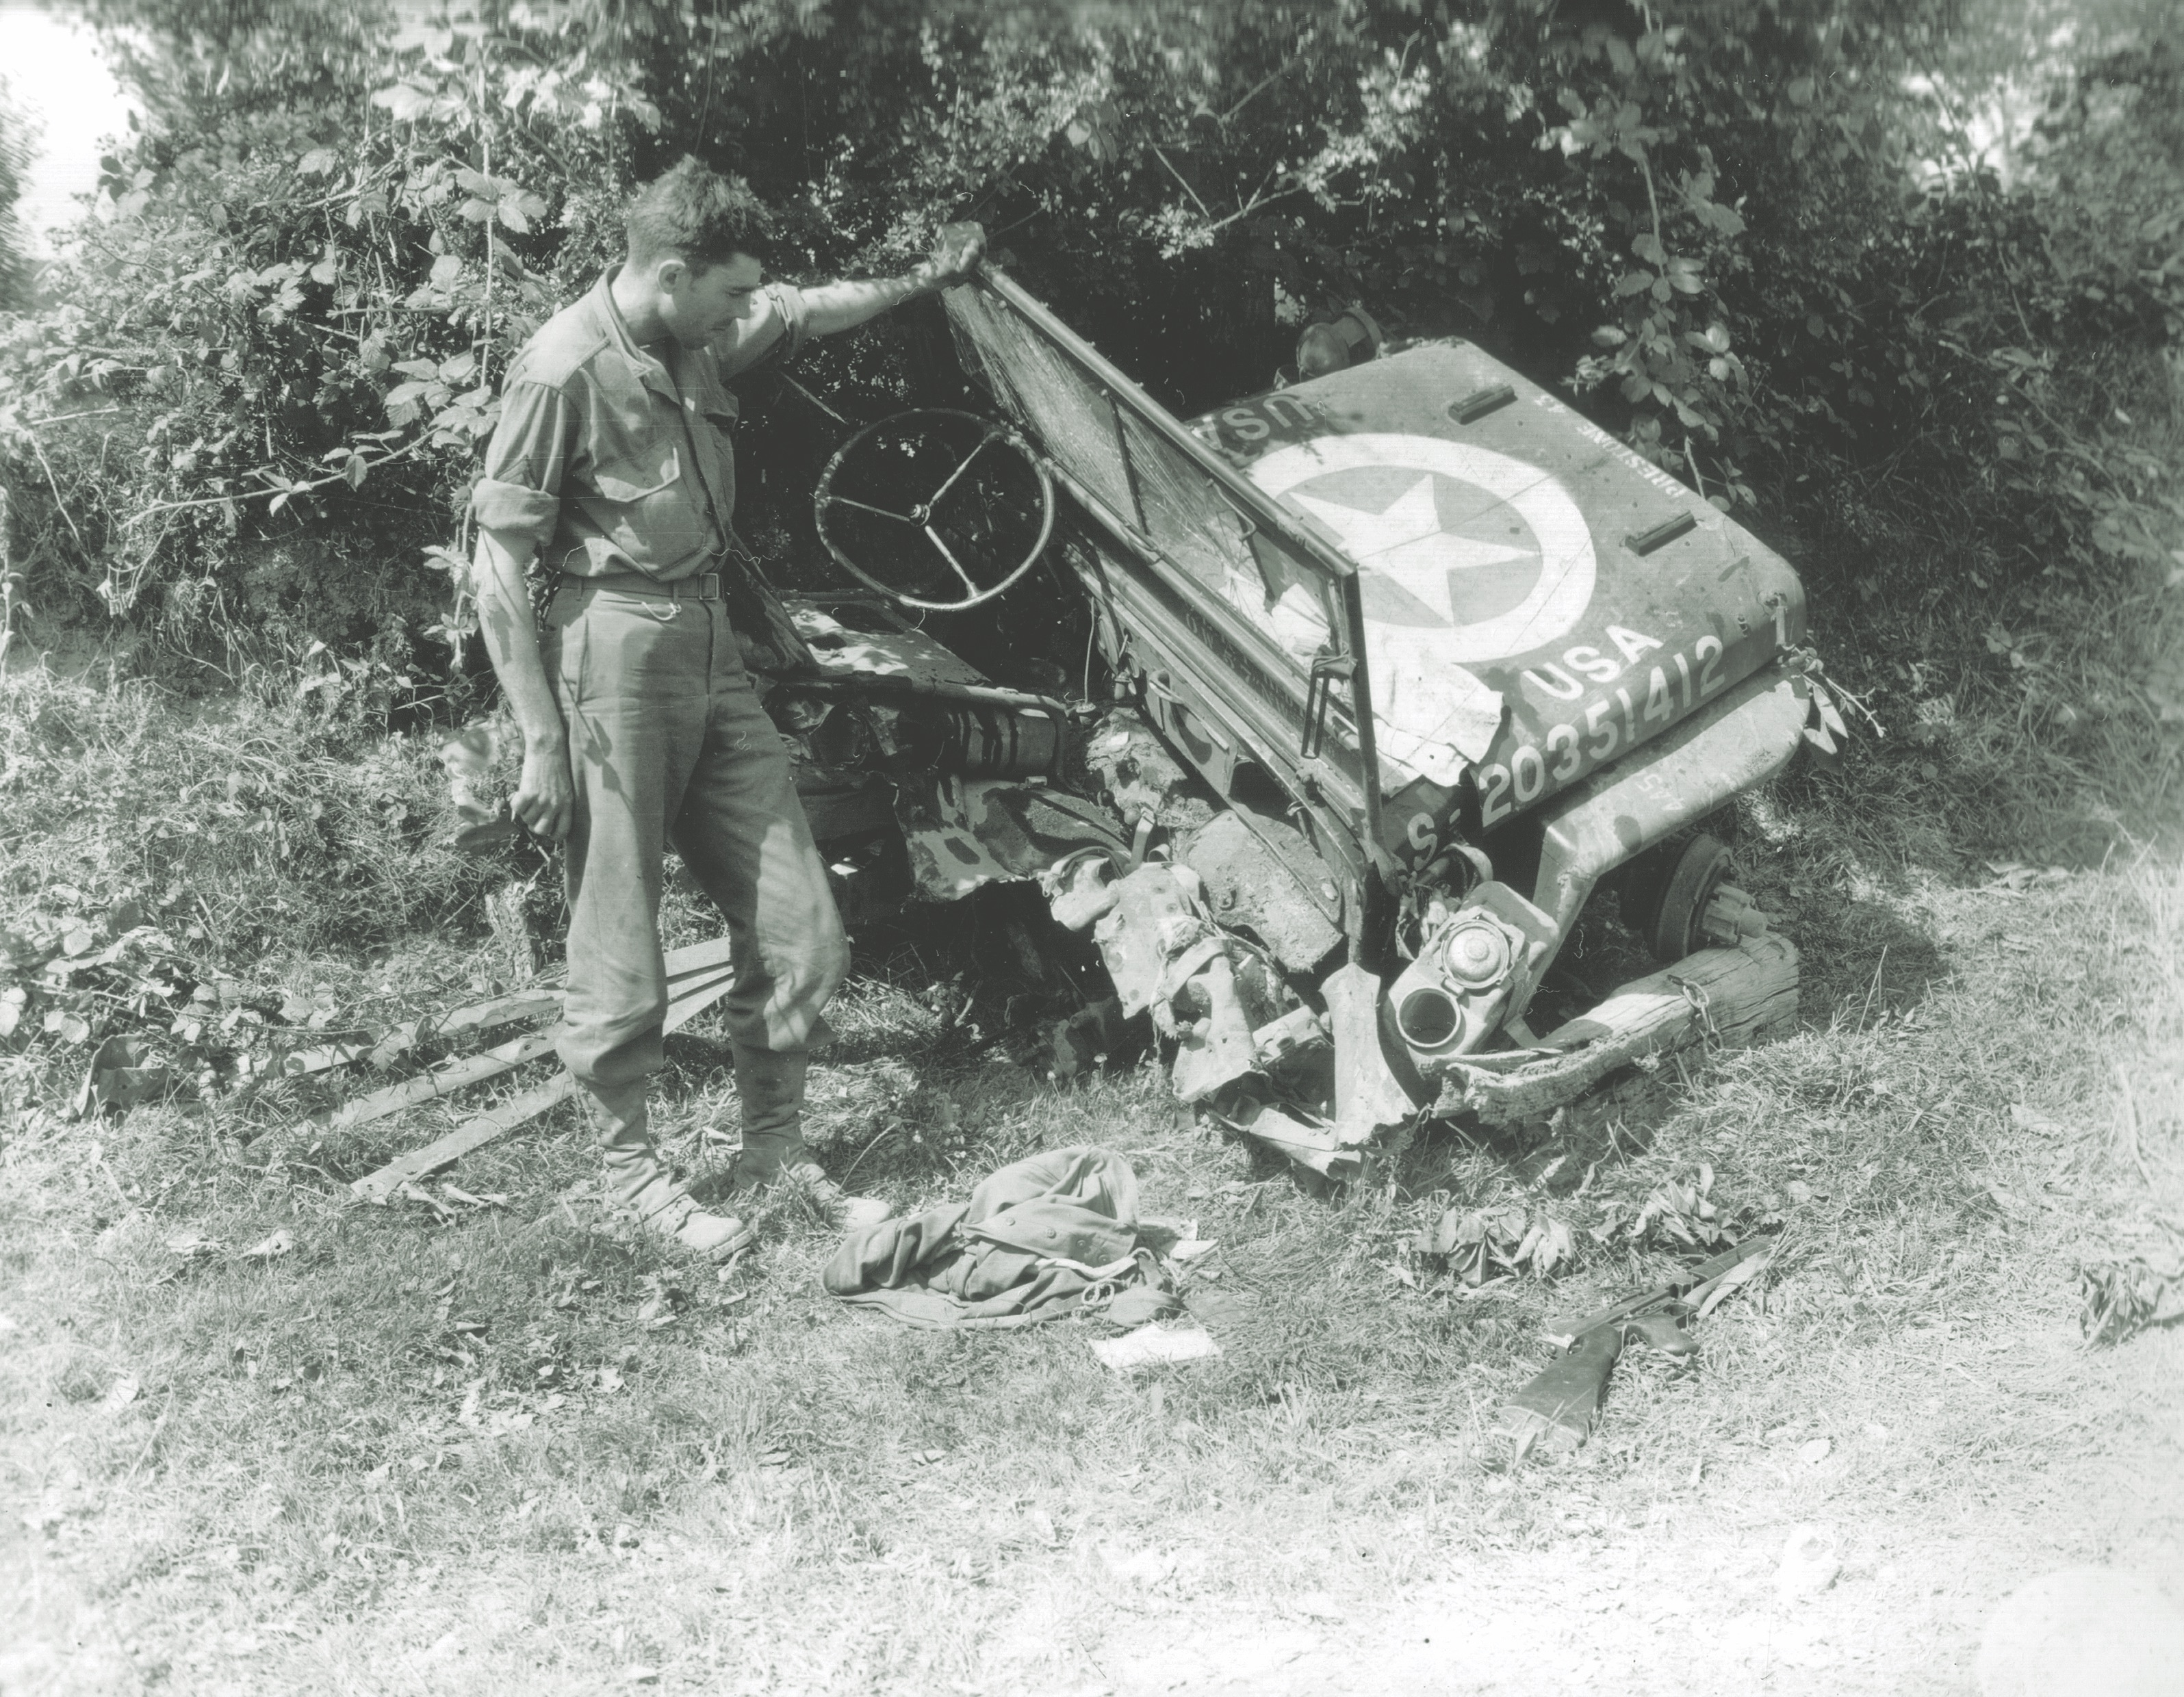 jeep wrecked by land mine